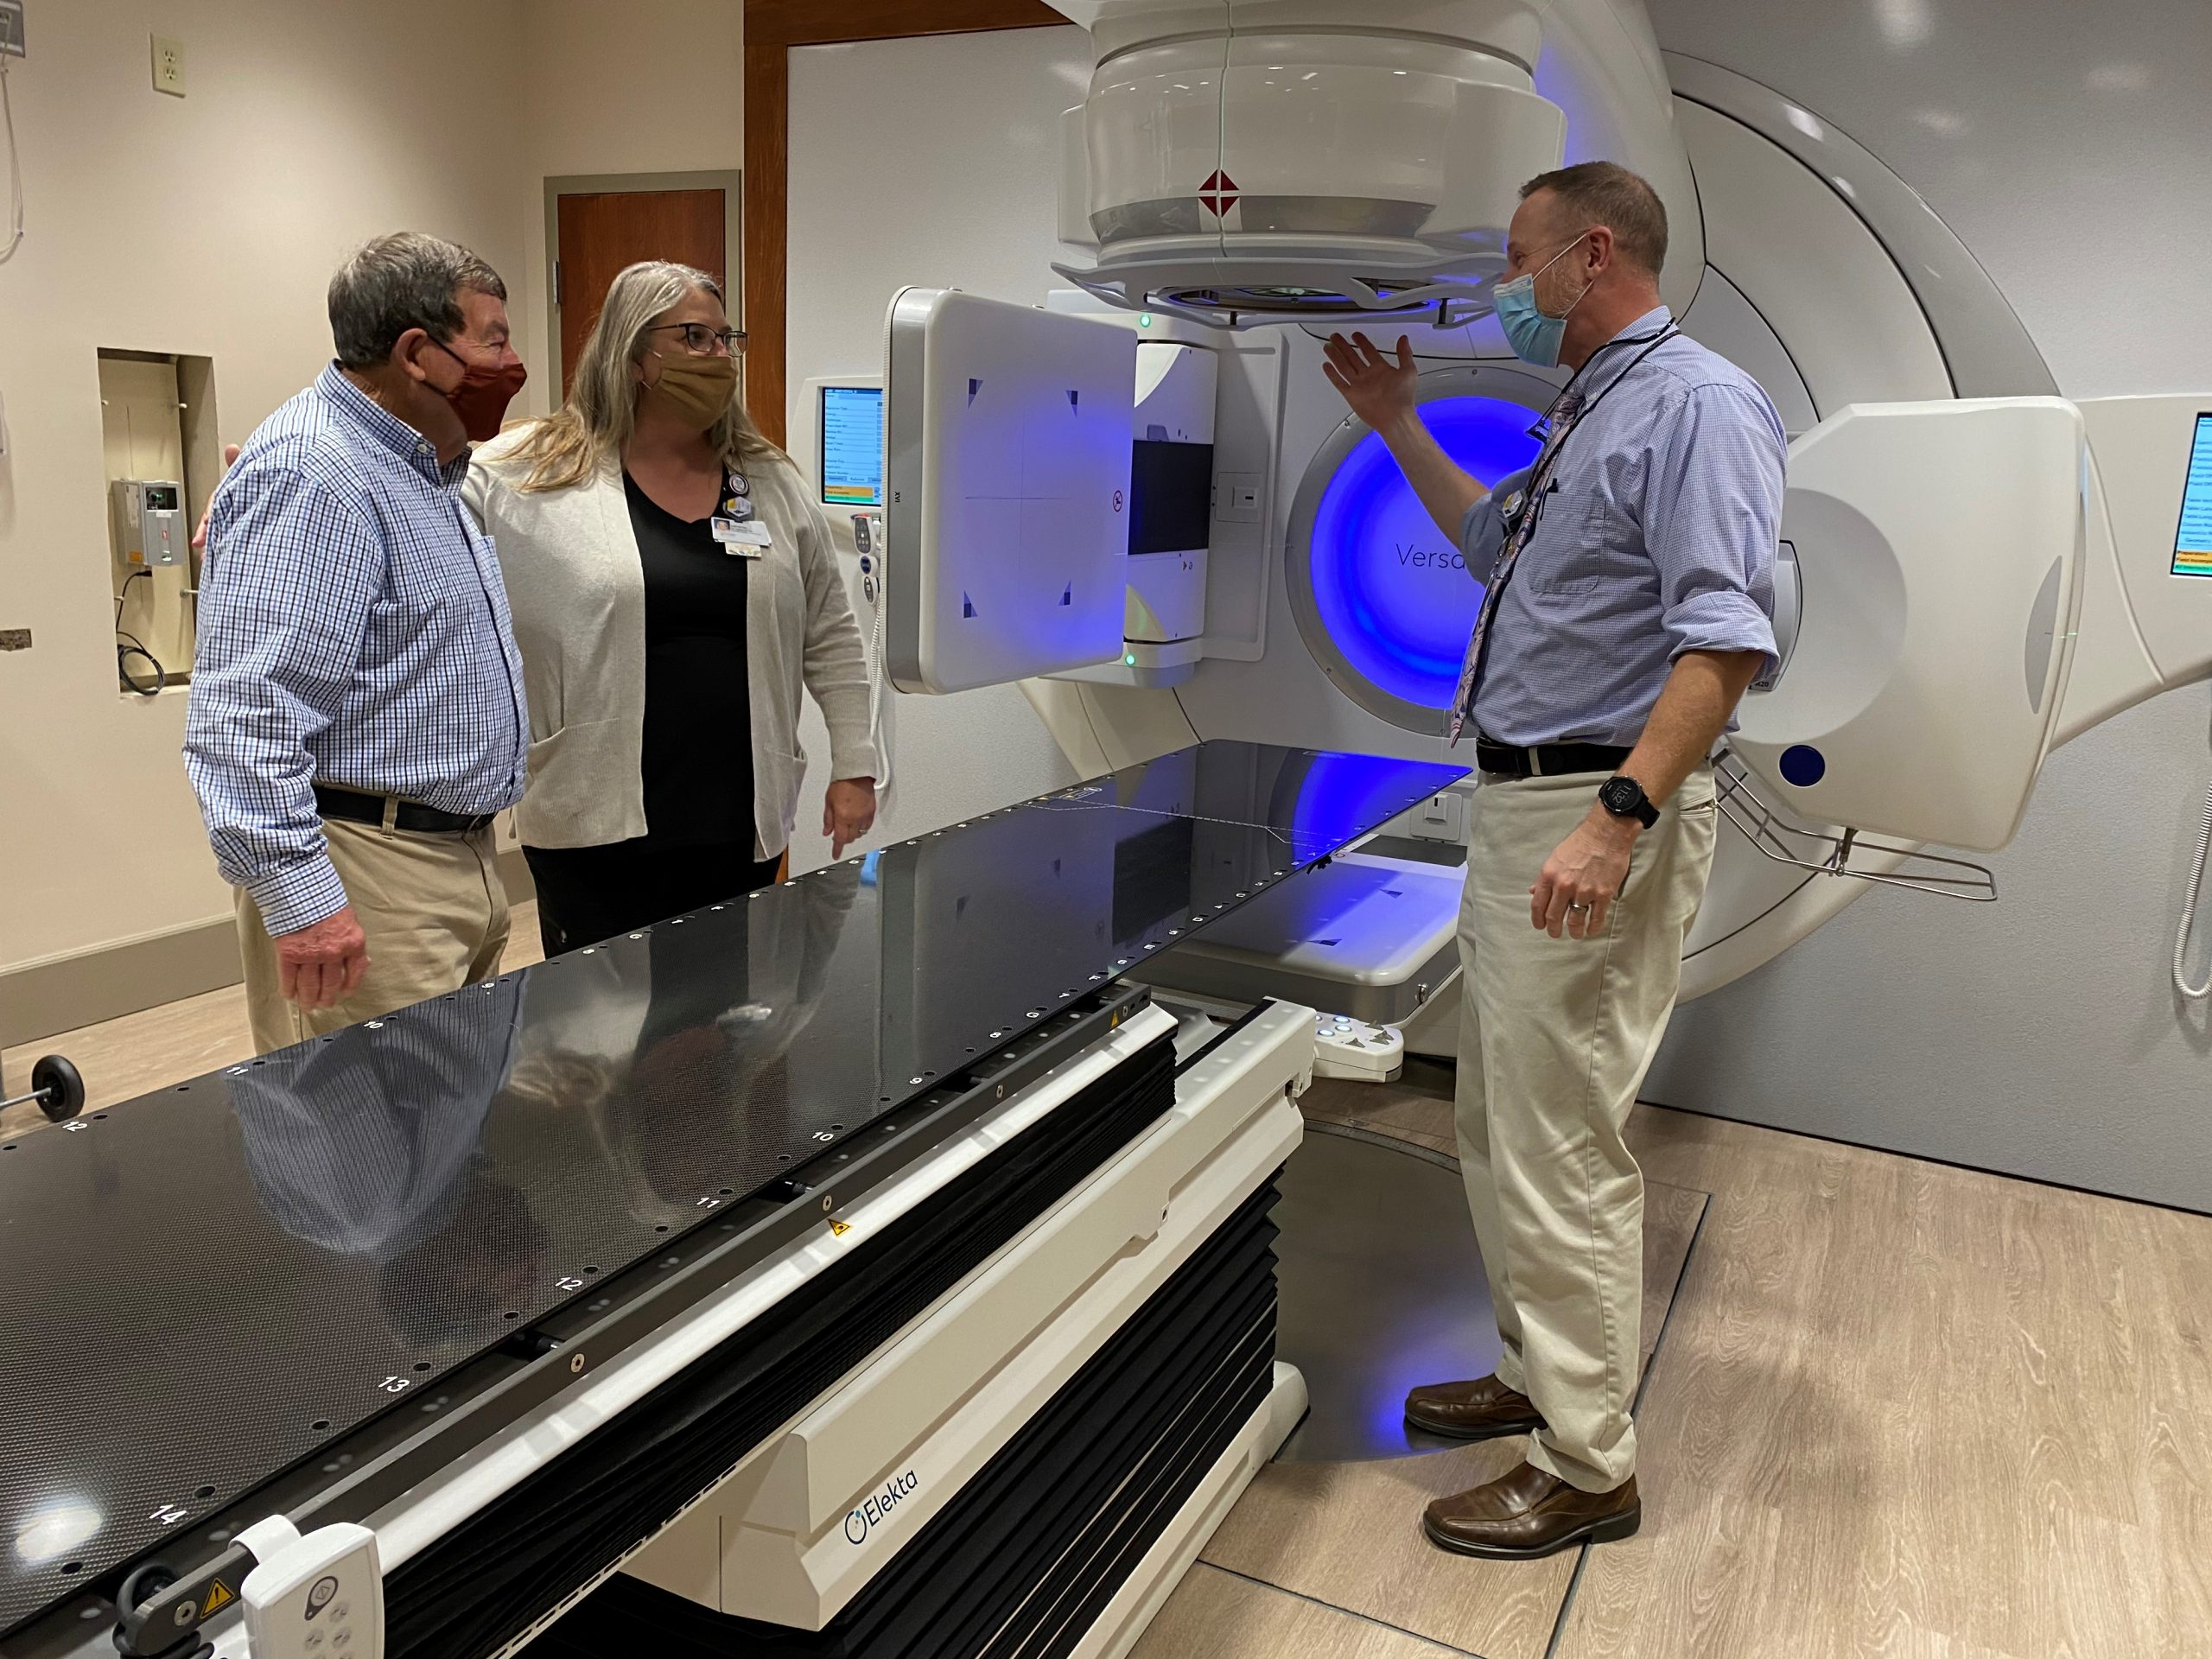 James Miller Discusses New Linear Accelerator